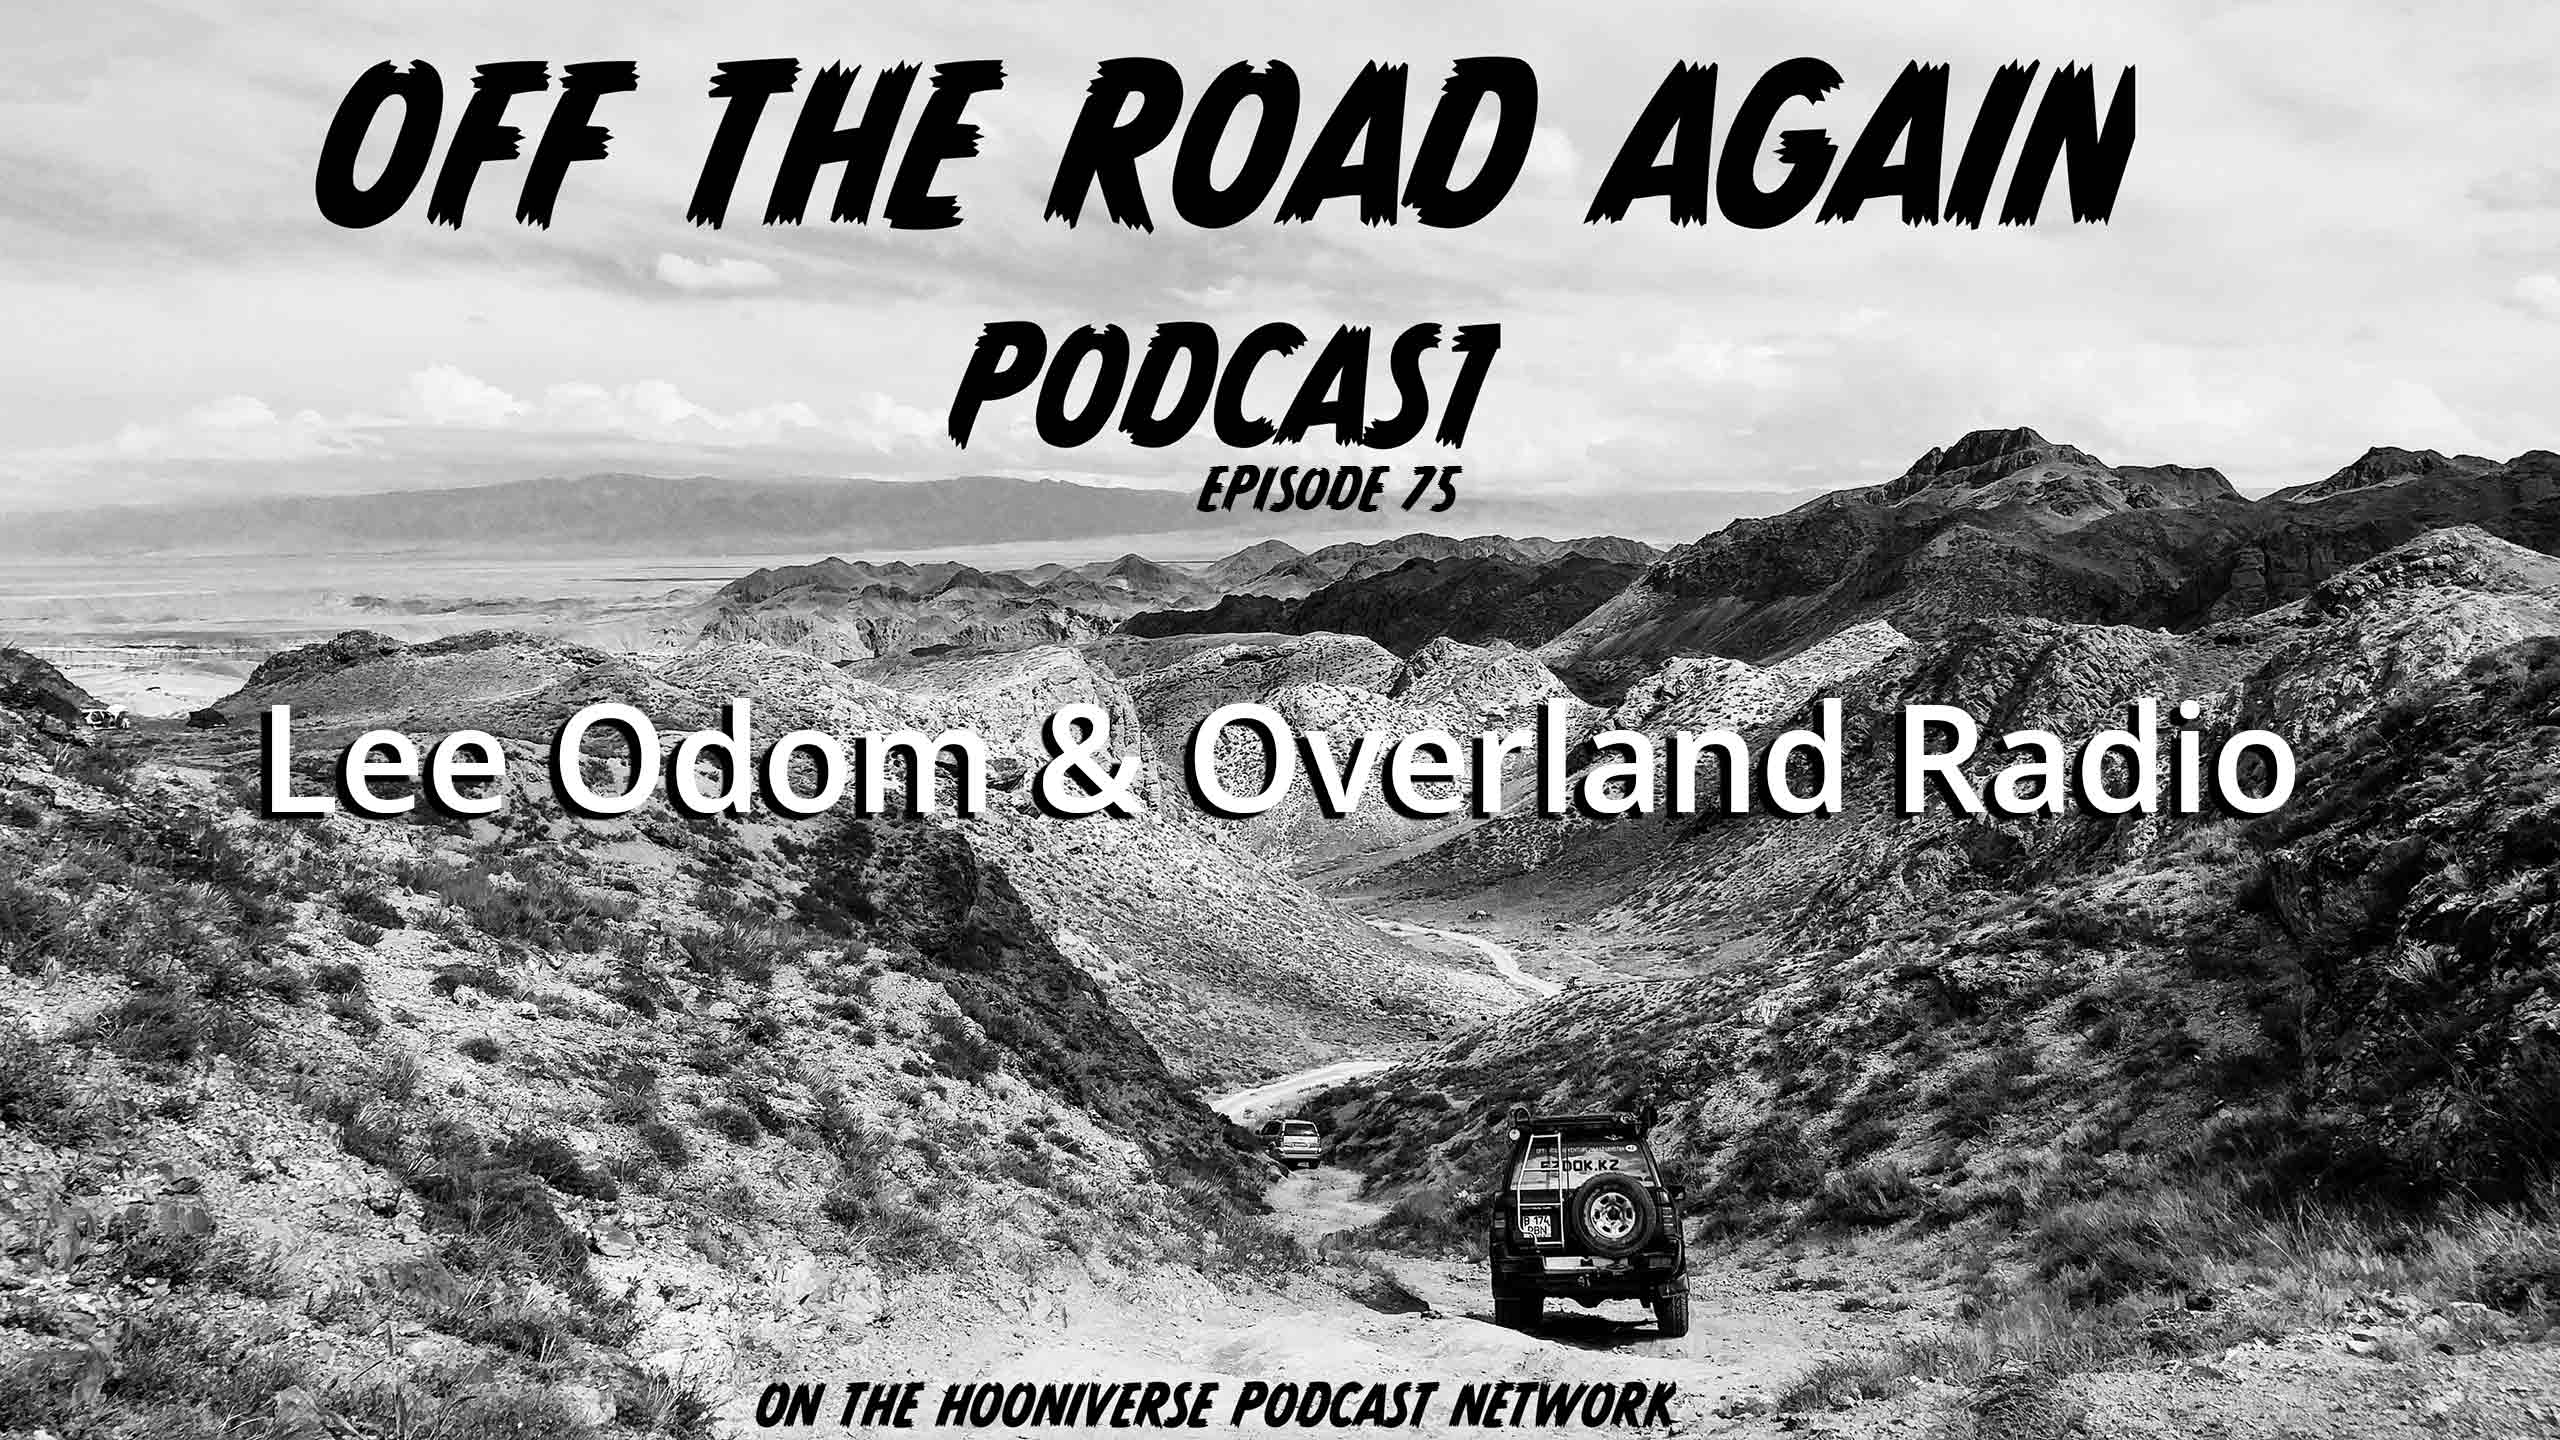 Lee-Odom-Overland-Radio-Off-The-Road-Again-Podcast-Episode-75